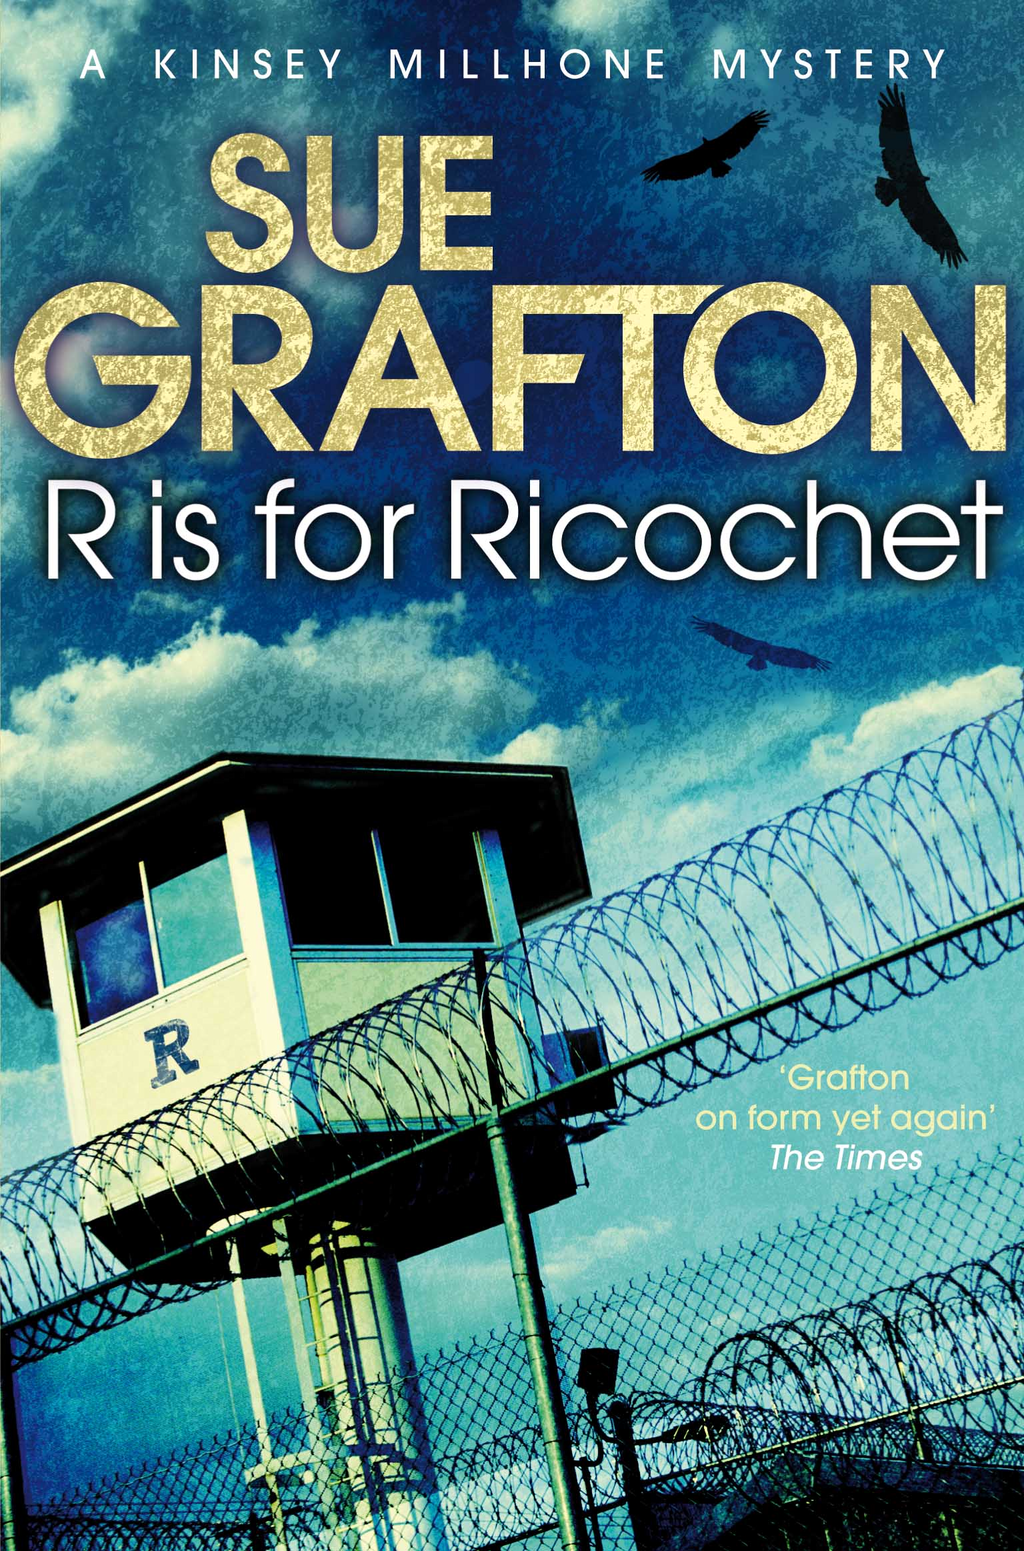 R is for RIcochet